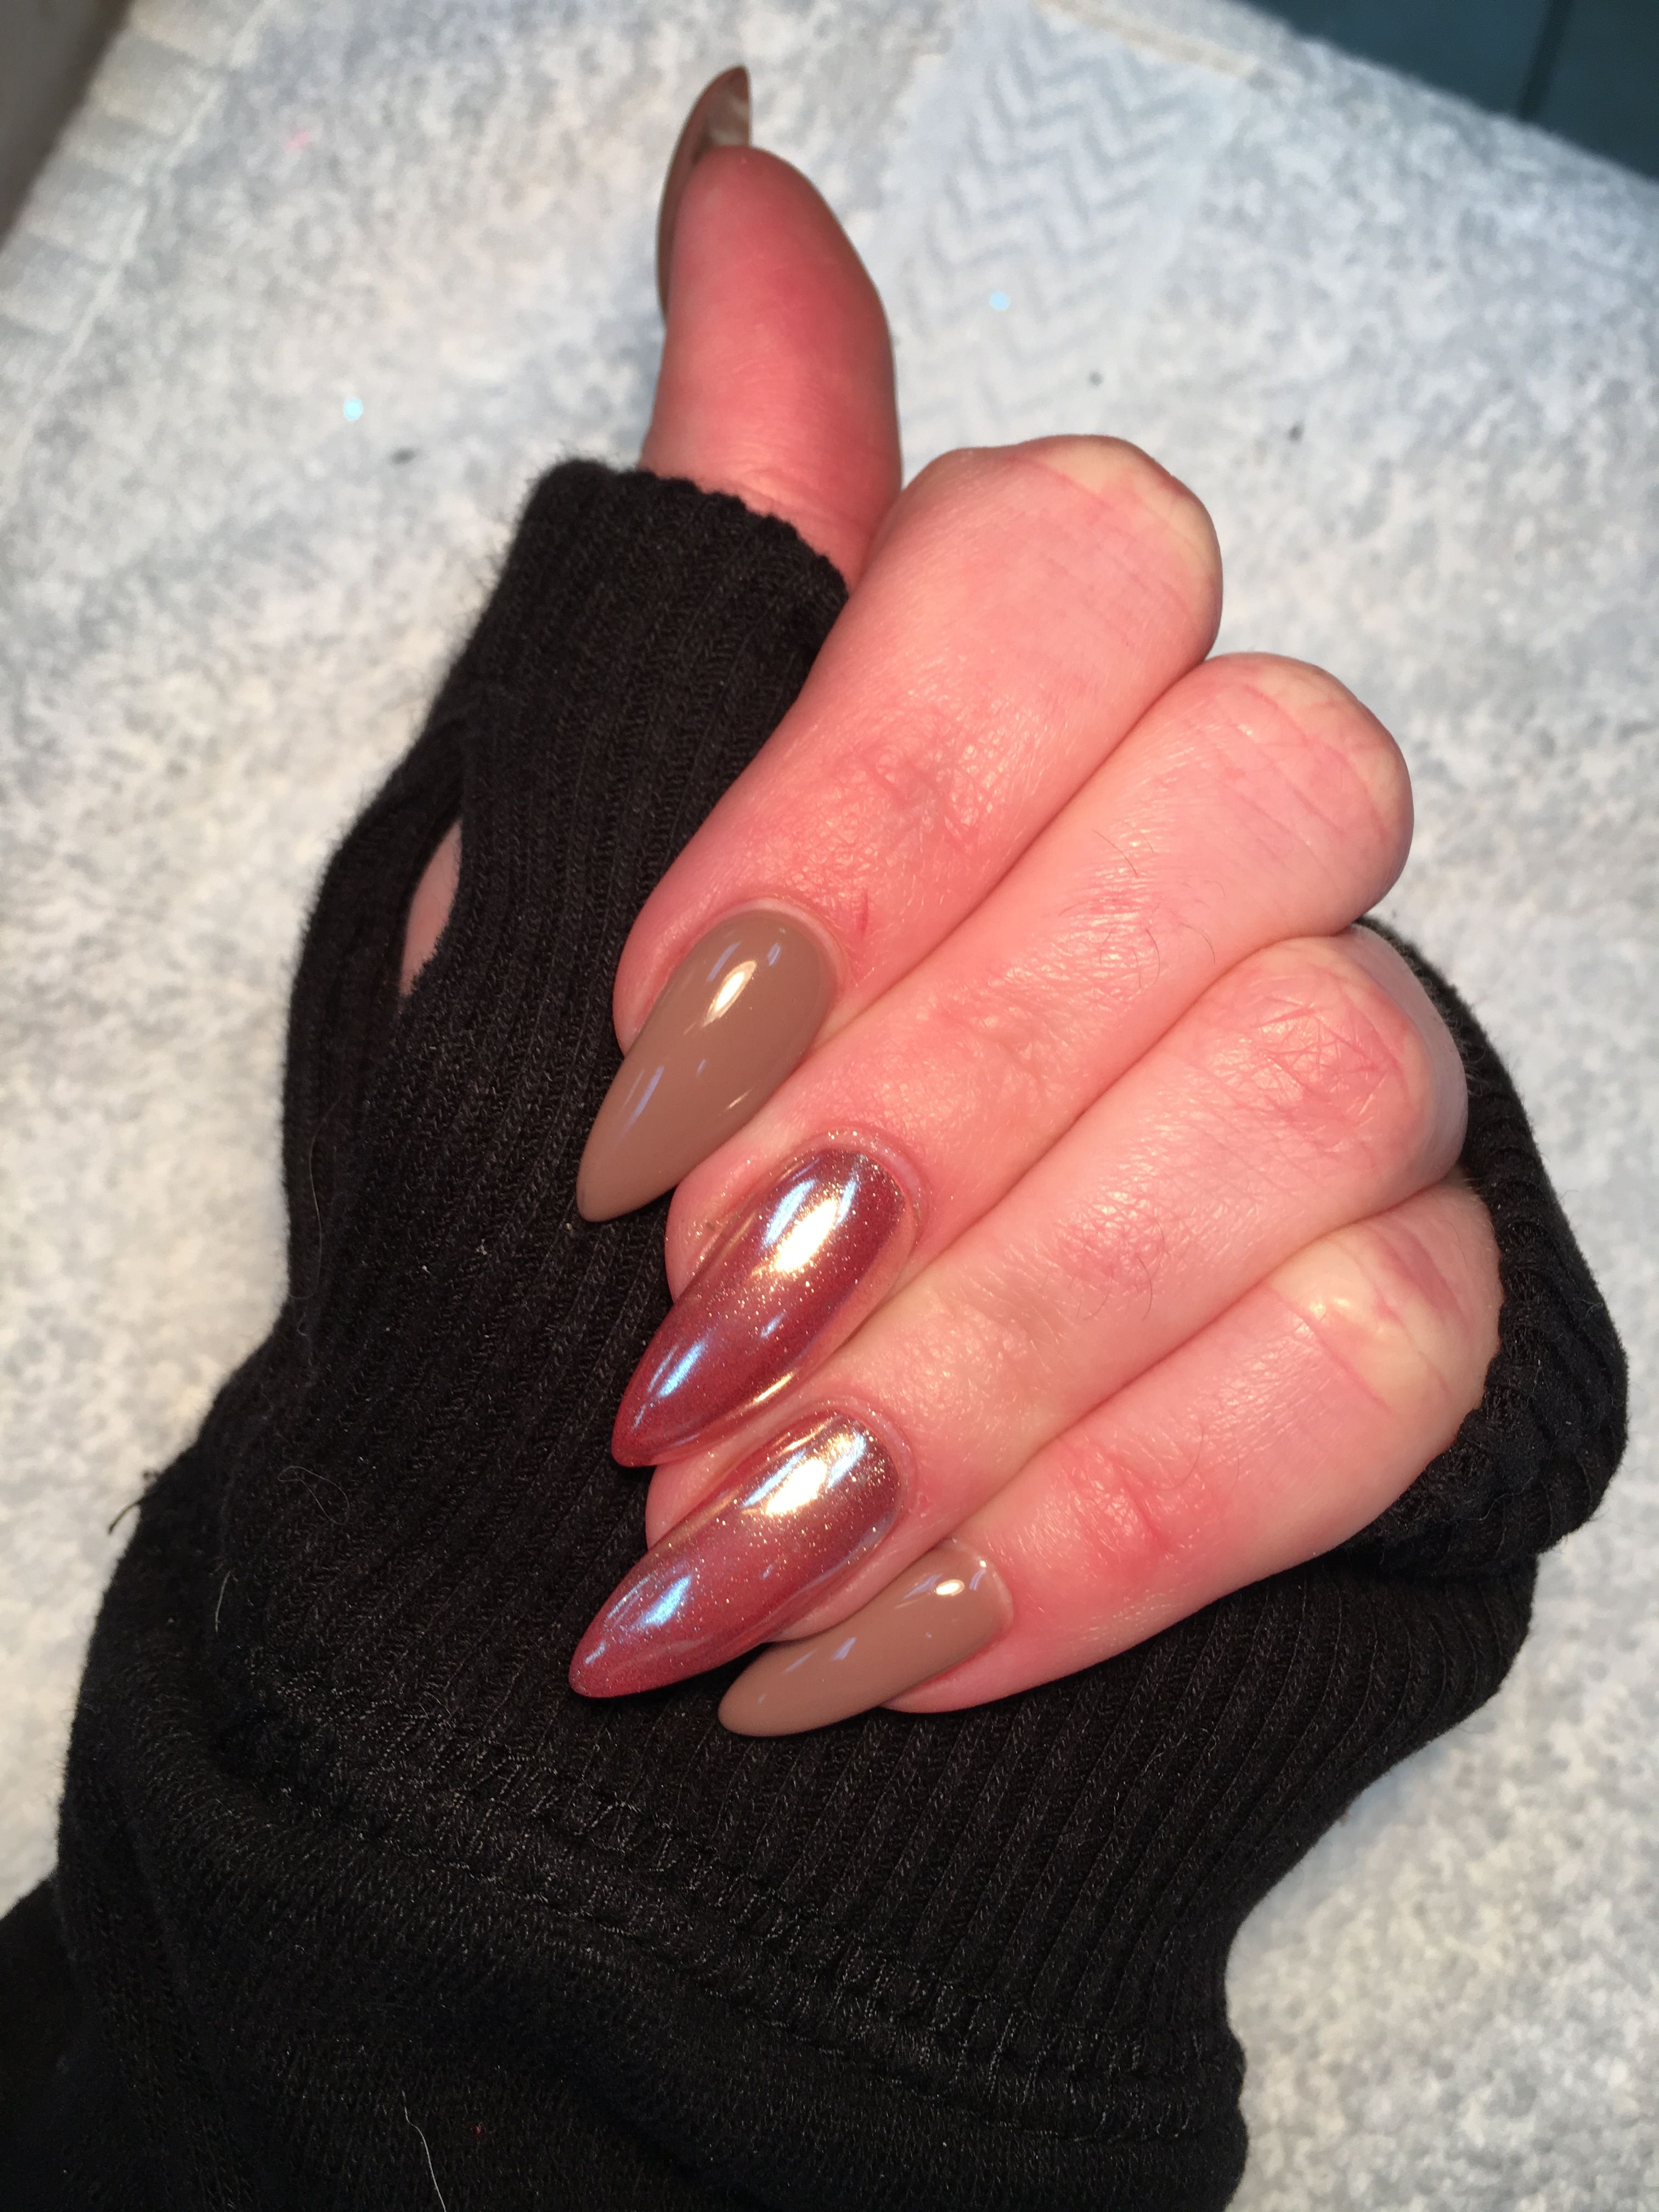 chrome nude stiletto nails 2017 new nails | lovely nails | Pinterest